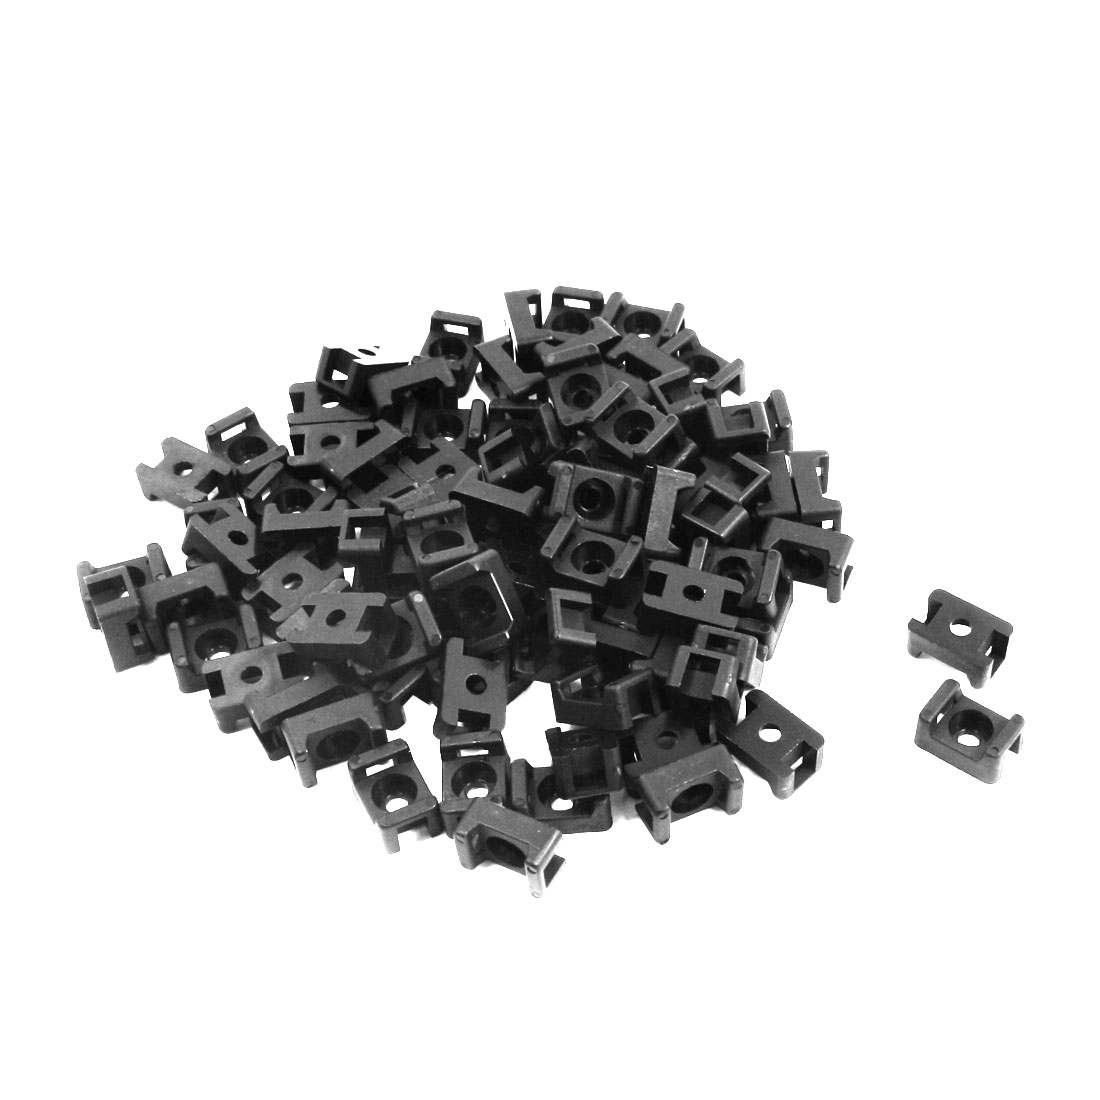 4.5mm Width Tie Cable 3mm Mounting Screw Saddle Base Holder Black 90 Pcs